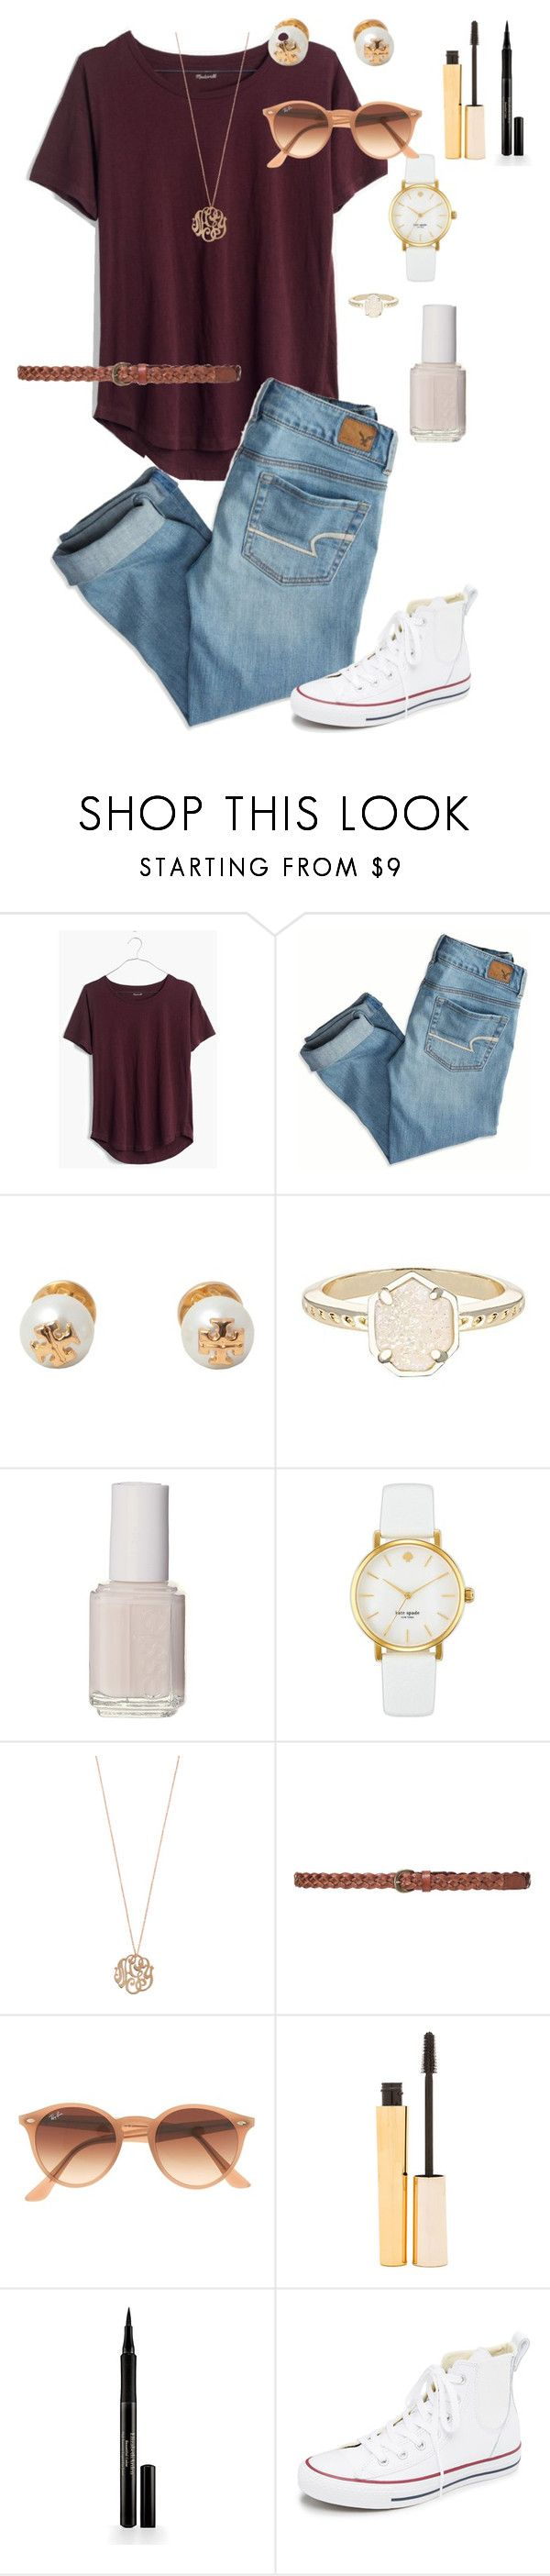 """Untitled #166"" by rosiemccumiskey ❤ liked on Polyvore featuring Madewell, American Eagle Outfitters, Tory Burch, Kendra Scott, Essie, Kate Spade, Ginette NY, Zara, Ray-Ban and Stila"